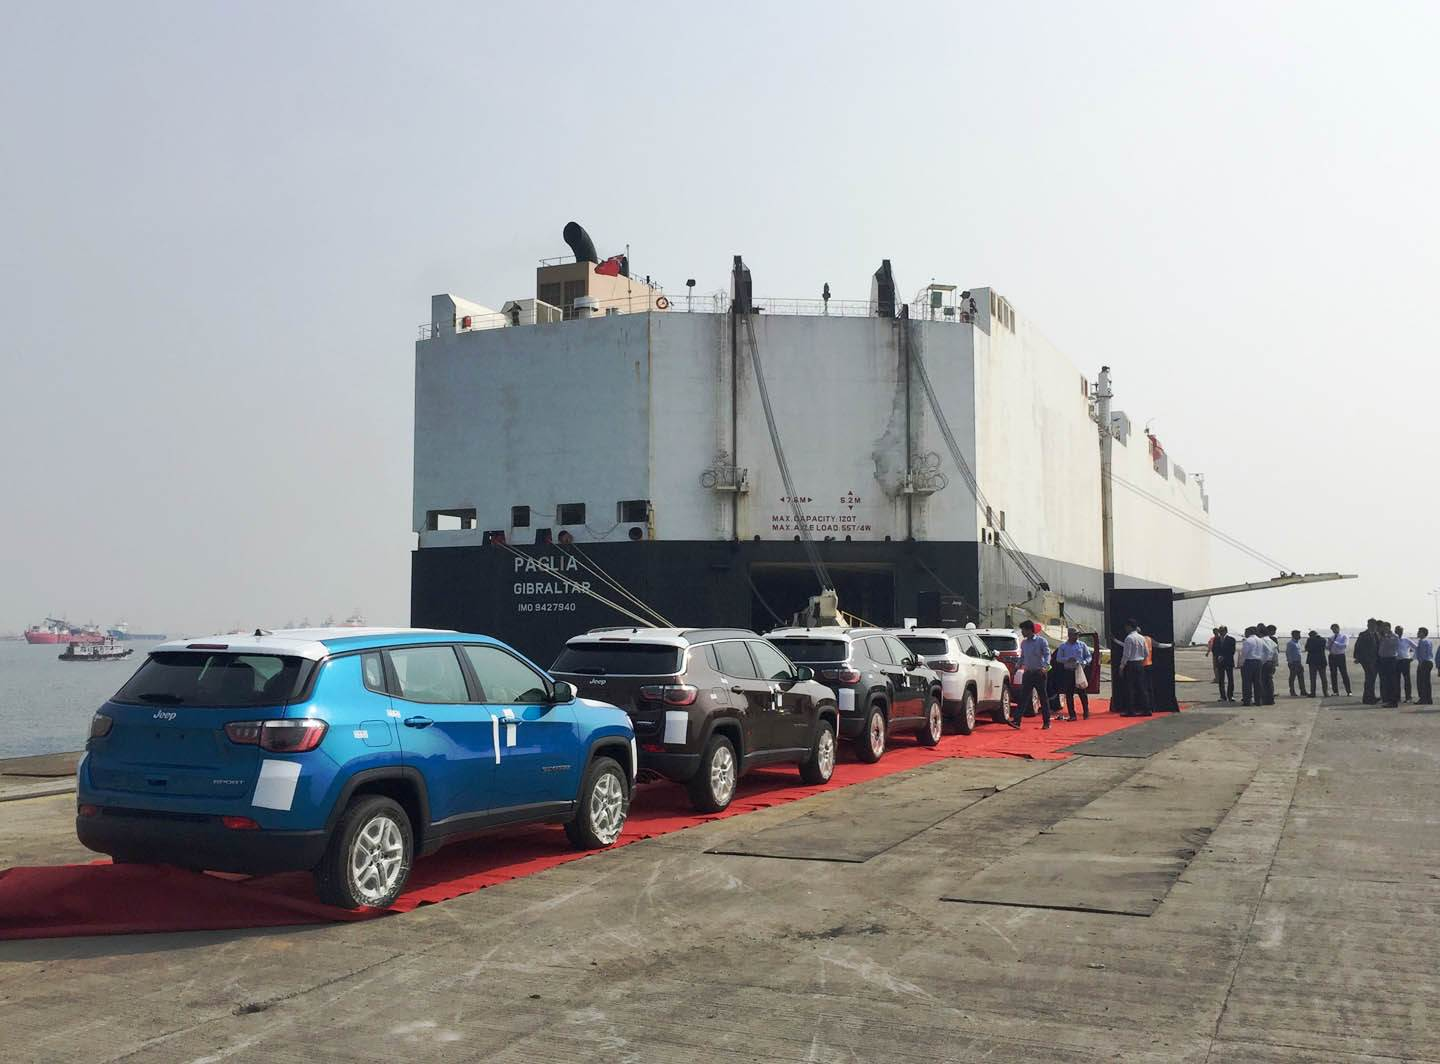 first-batch-of-the-jeep-compass-at-bombay-port-trust-ready-to-be-shipped-to-japan-and-australia-1